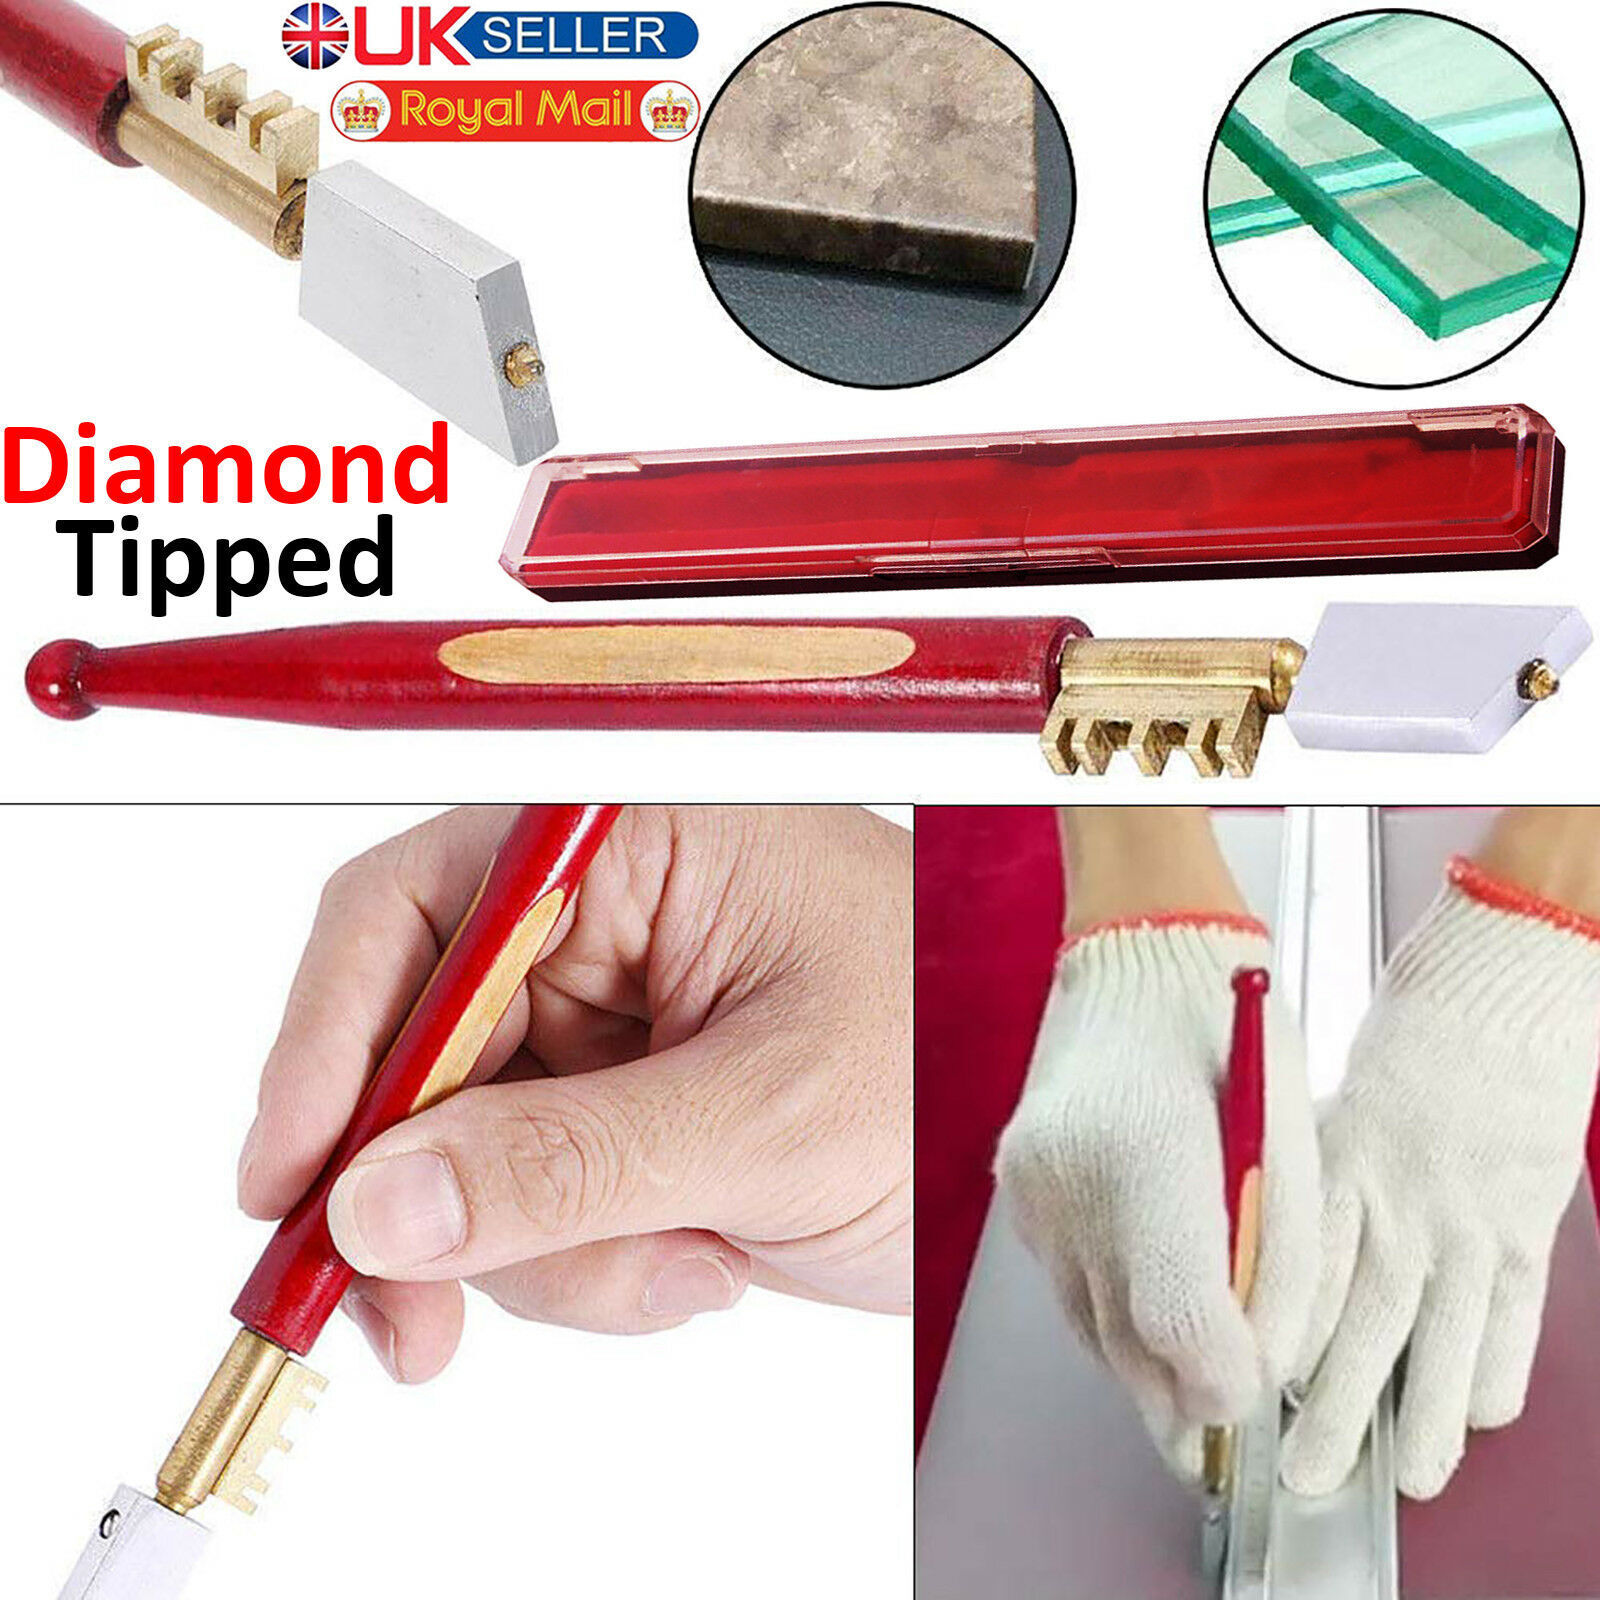 PROFESSIONAL SHARP DIAMOND TIP GLASS CUTTER WINDOW MIRROR GLAZING CUTTING TOOL